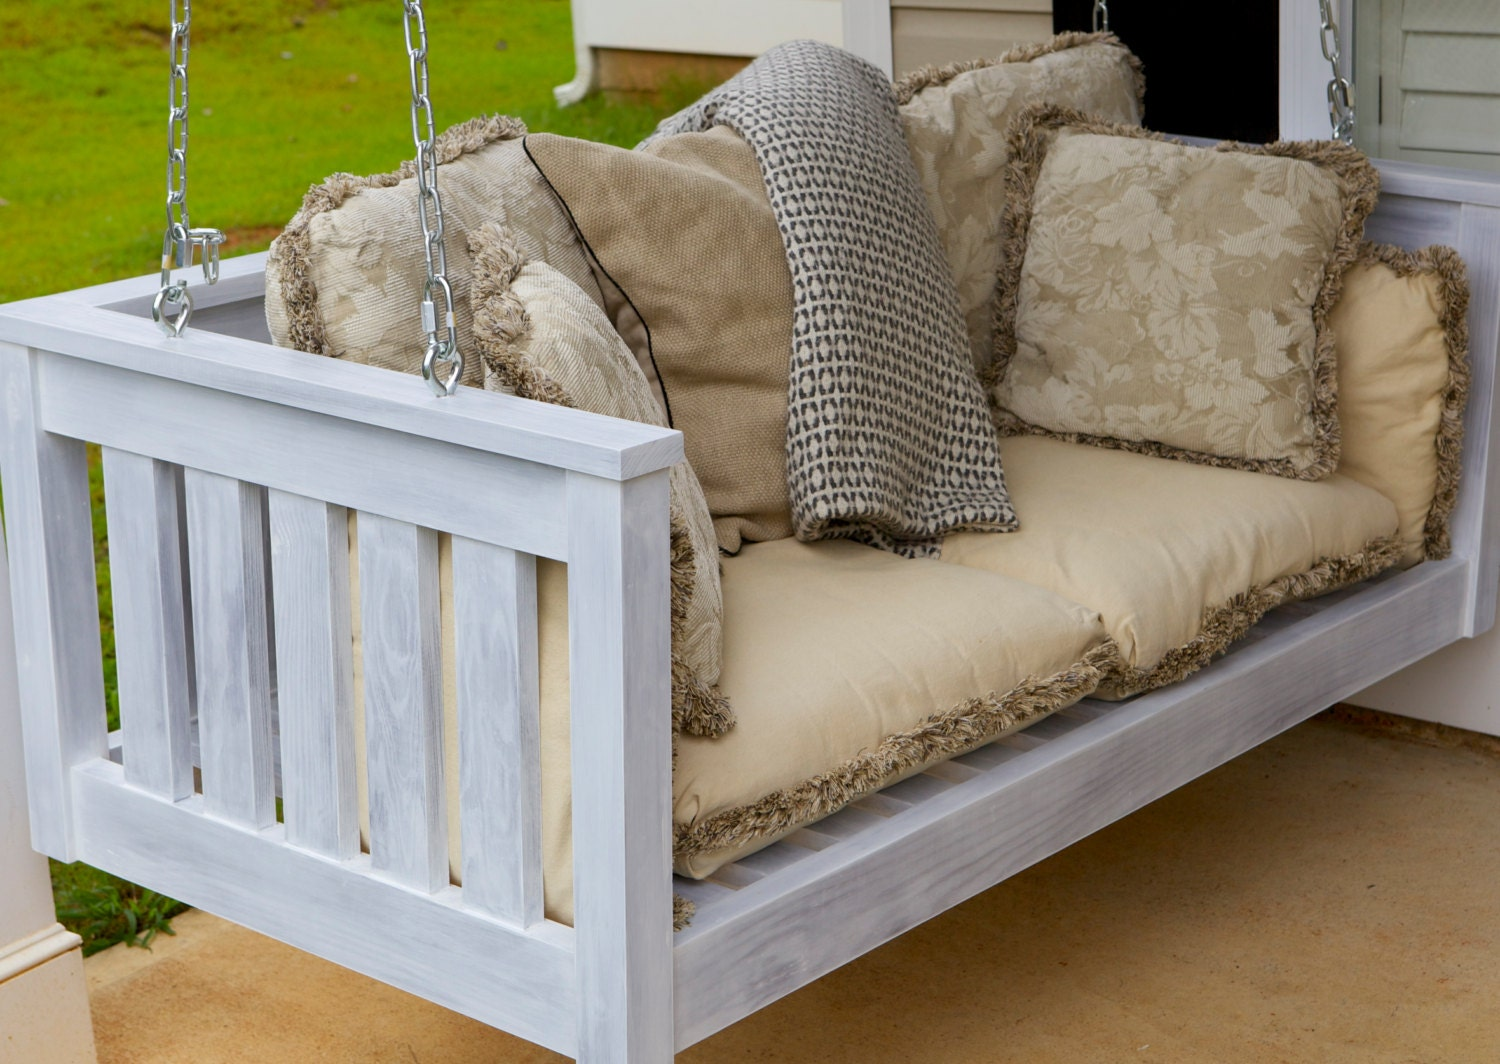 Porch Swing/Day Bed - EVACO